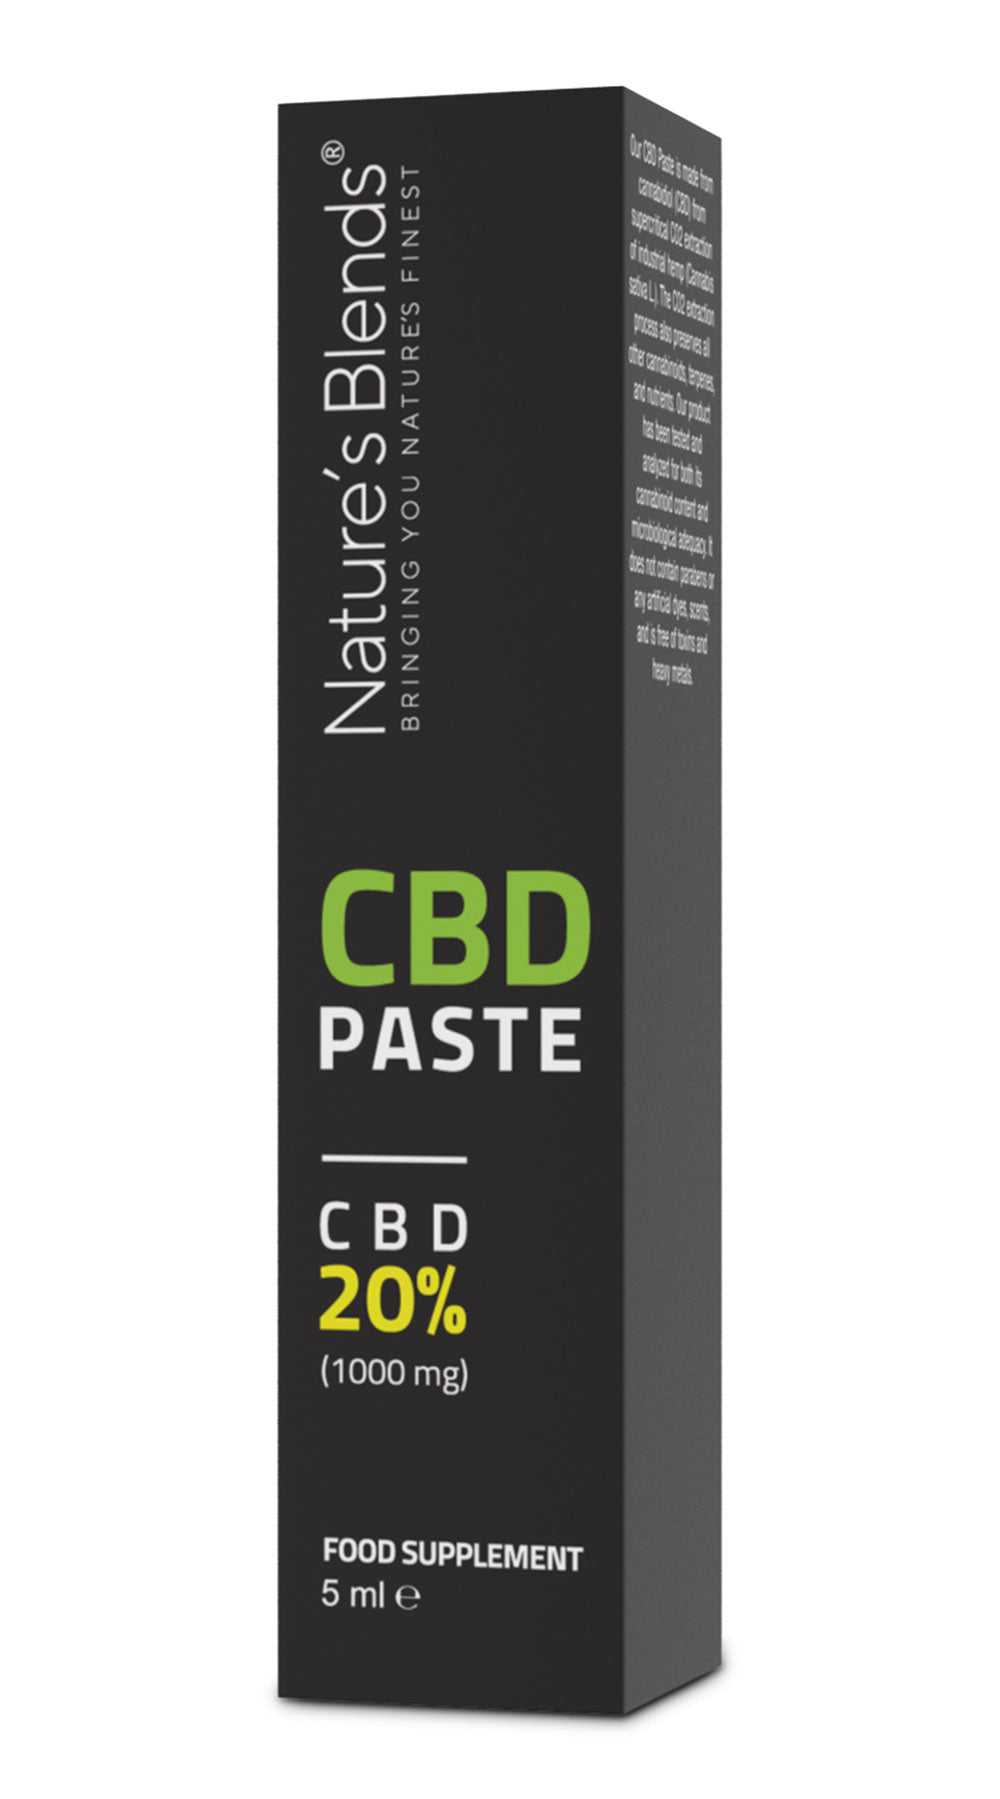 CBD PASTE 20% | 1000mg | 5ml